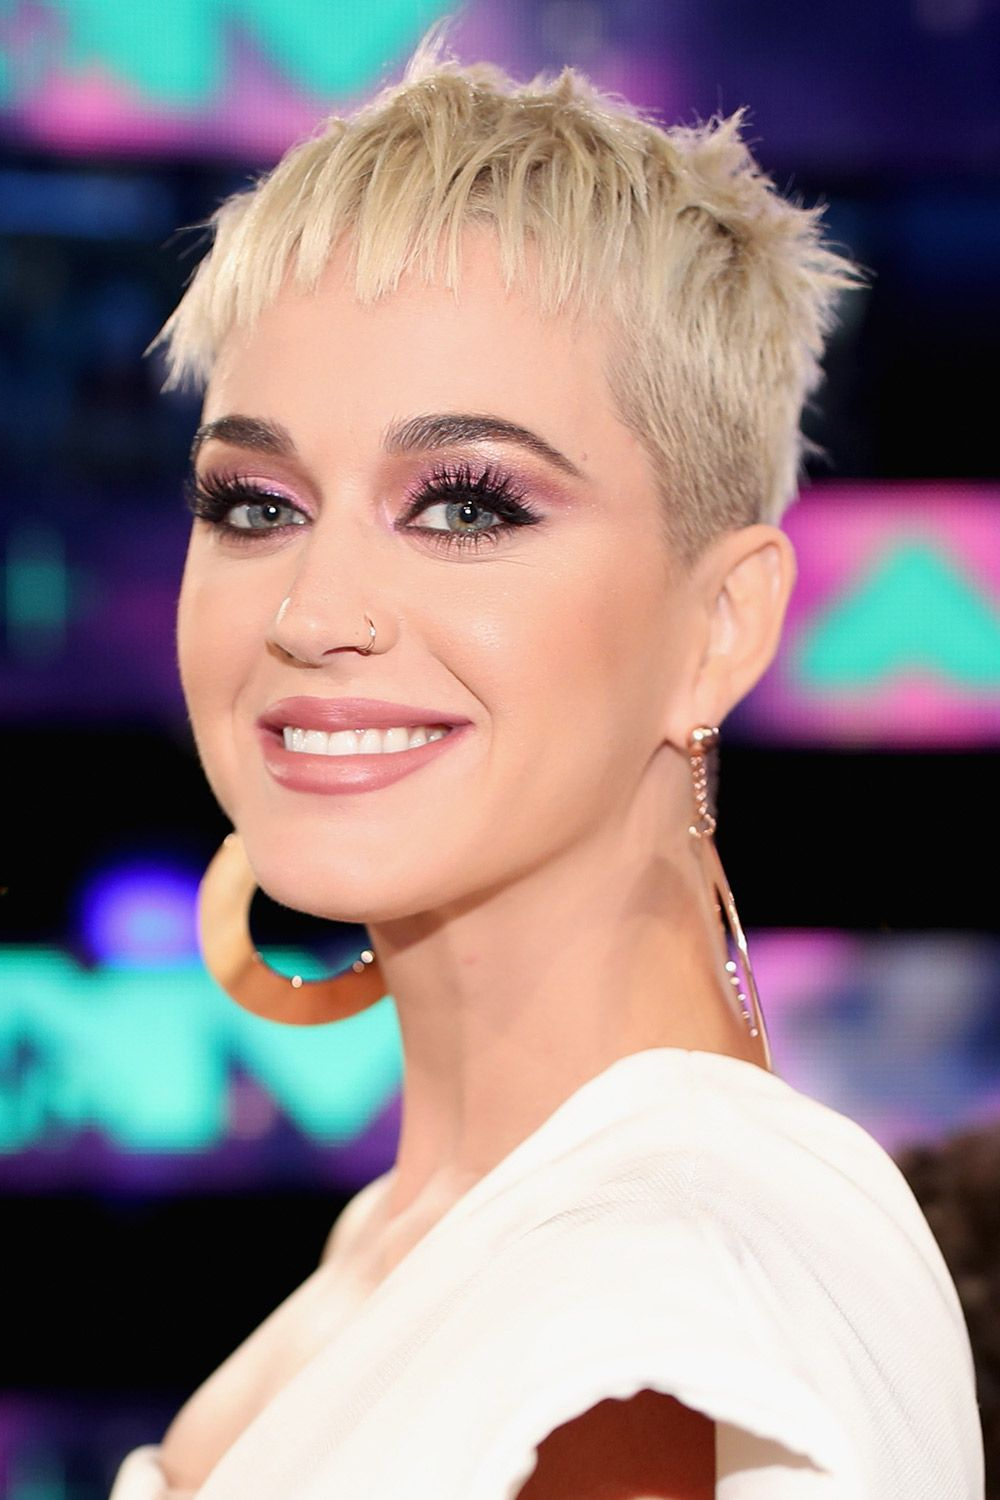 65 Best Short Hairstyles, Haircuts, And Short Hair Ideas For 2018 Inside Feminine Short Hairstyles For Women (Gallery 9 of 25)